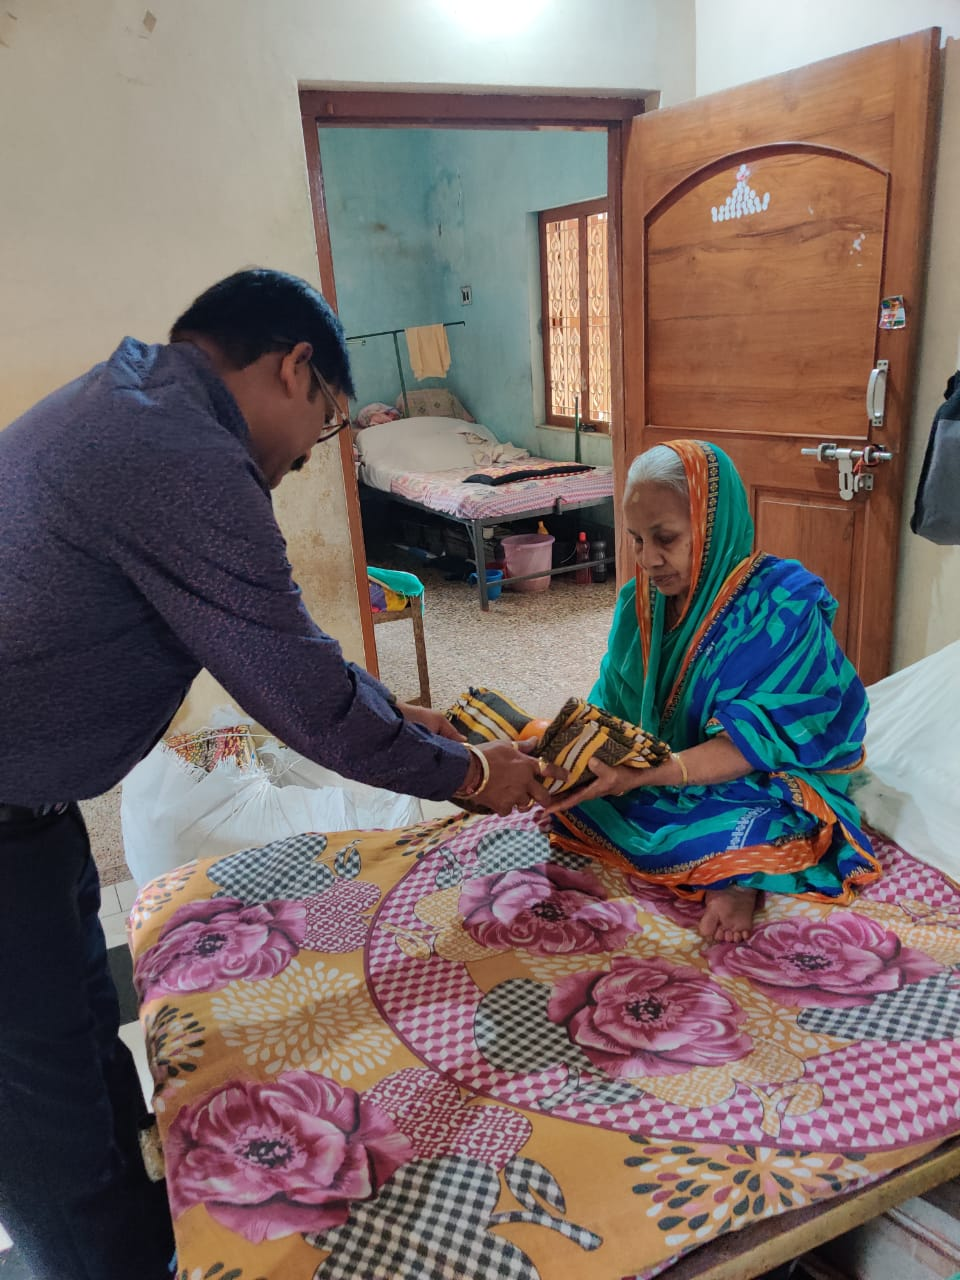 Leaders distributing blankets and fruits at an Old Age Home near Berhampur